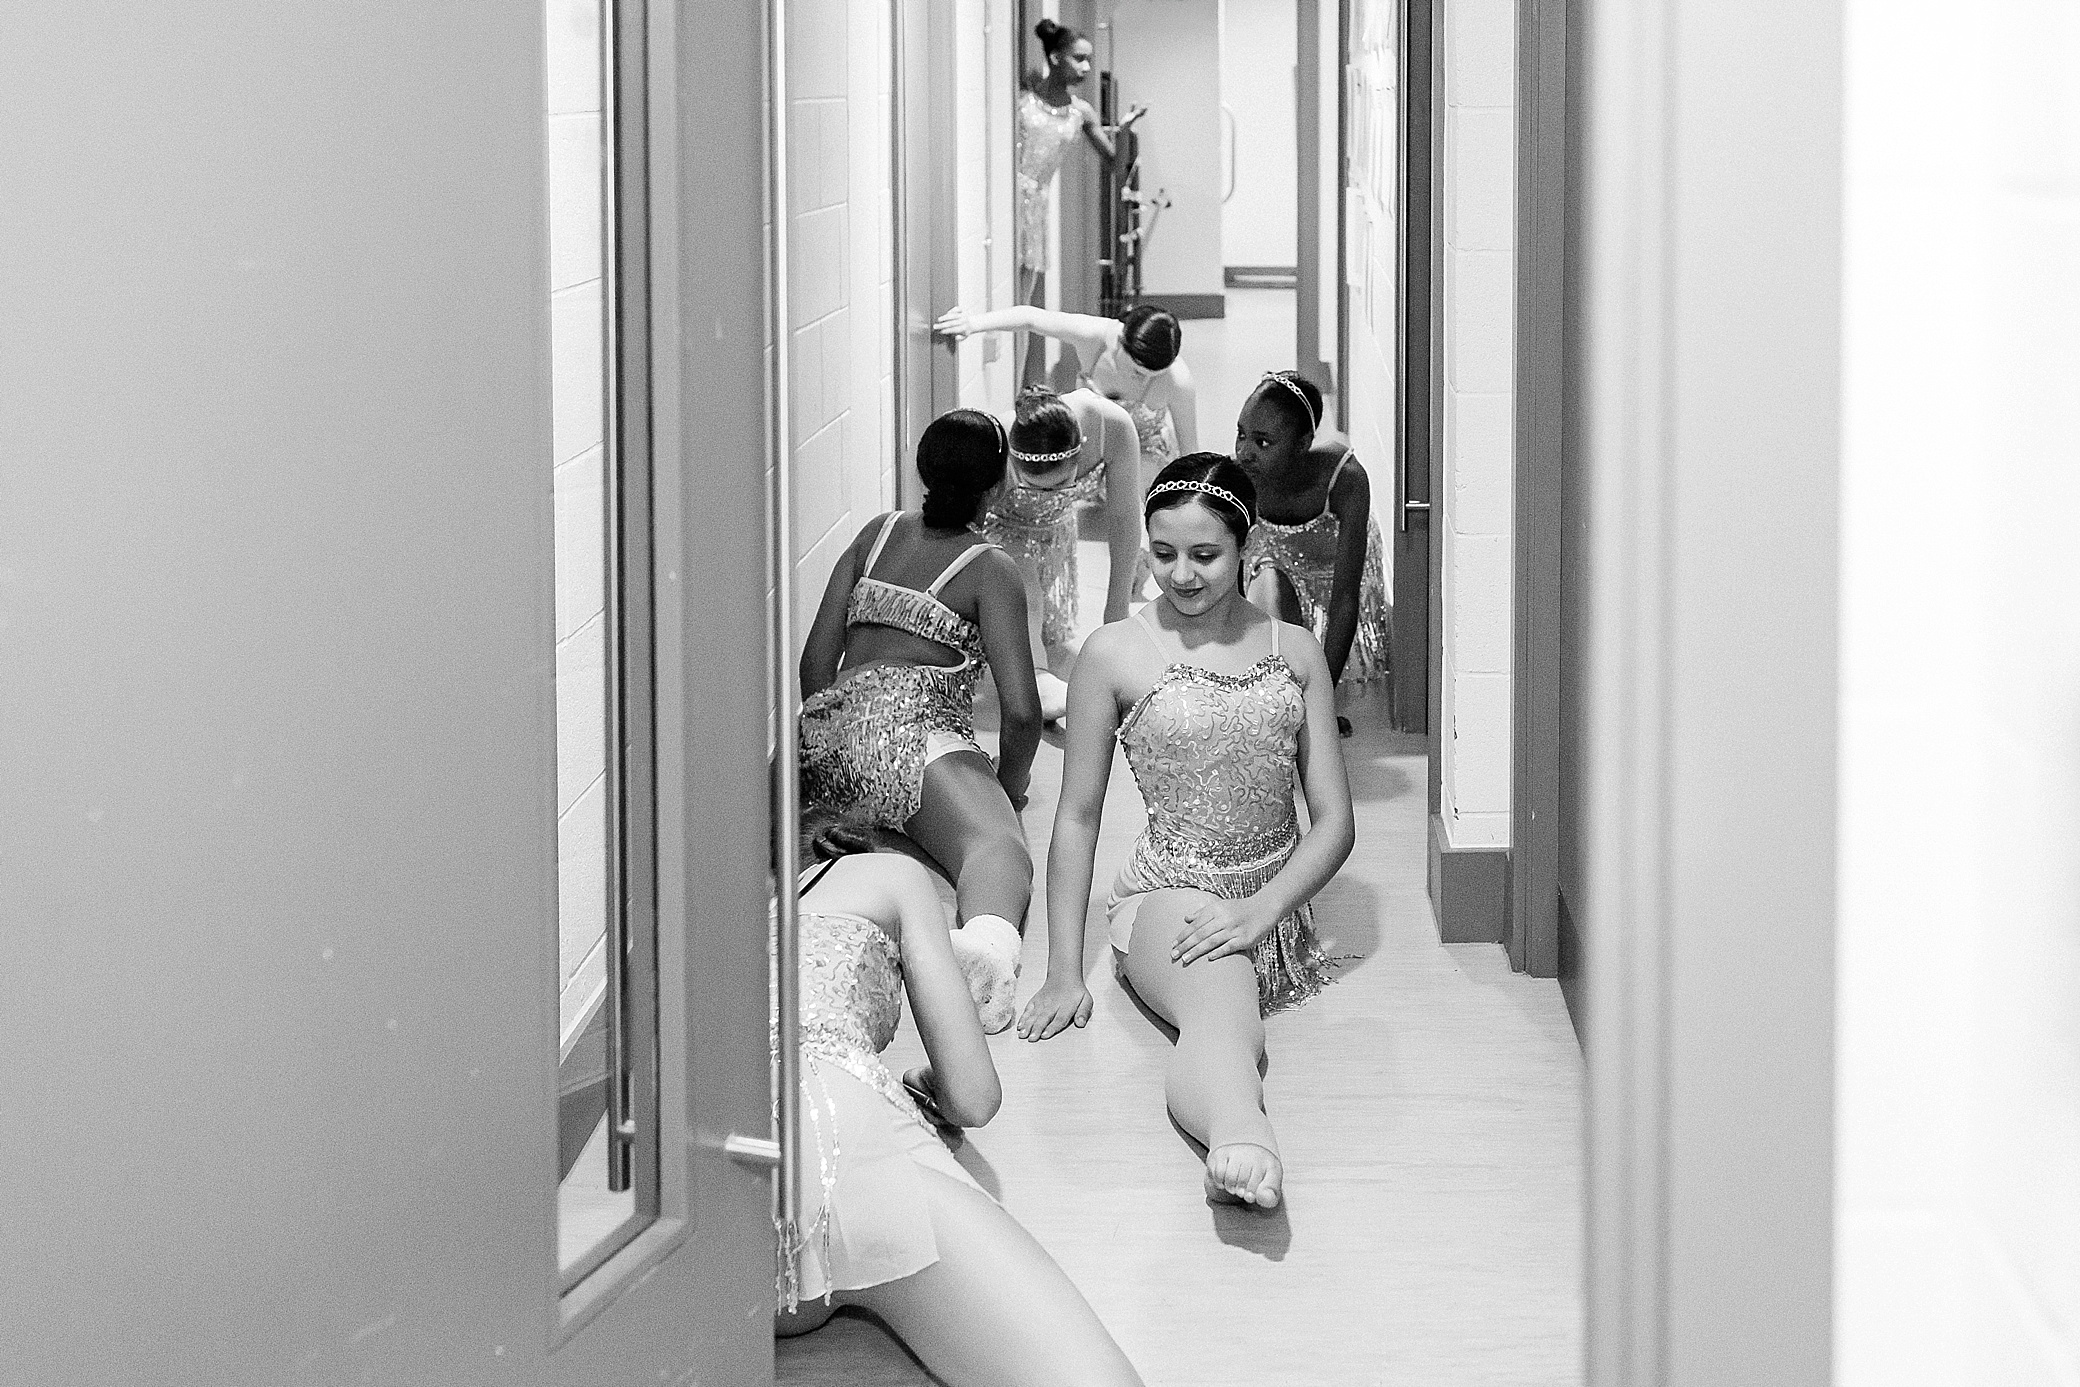 Dancers practising backstage before their performance at The Exchange theatre in Twickenham